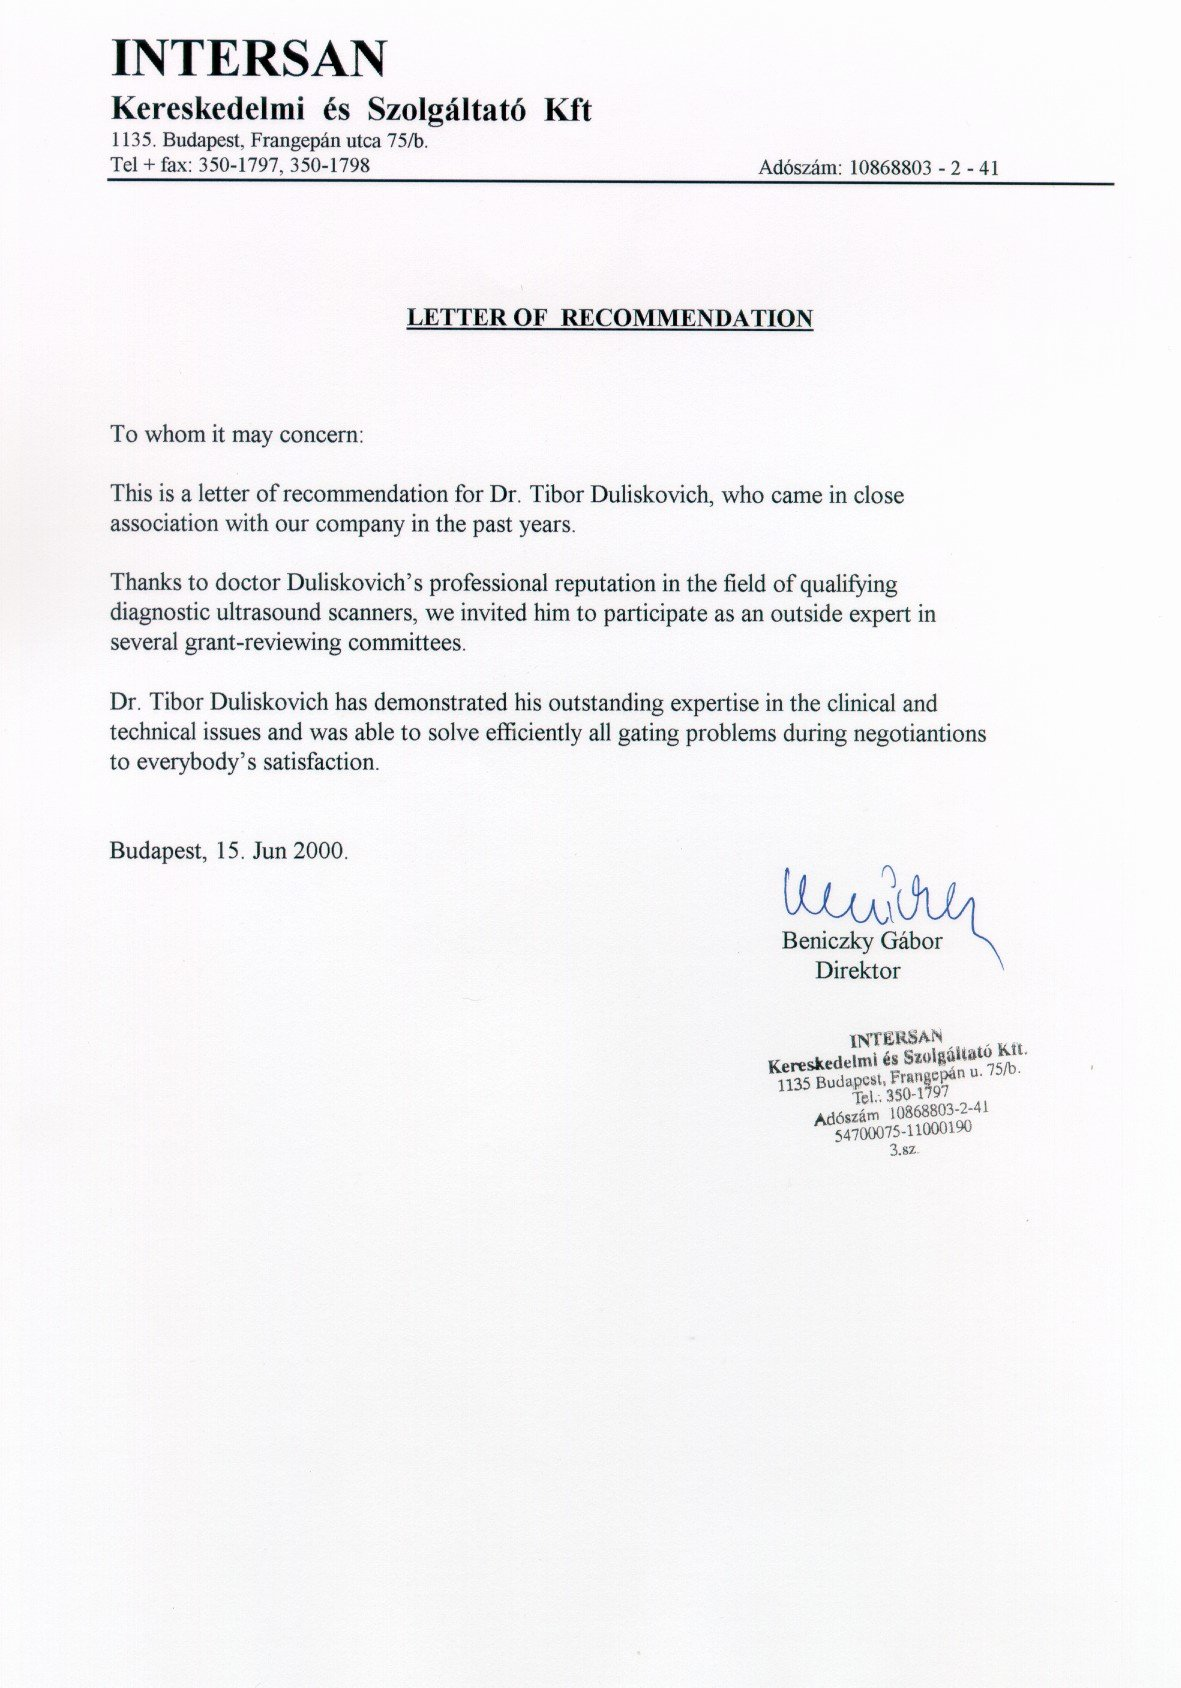 Physician Letter Of Recommendation Examples New Physician assistant Letter Of Re Mendation